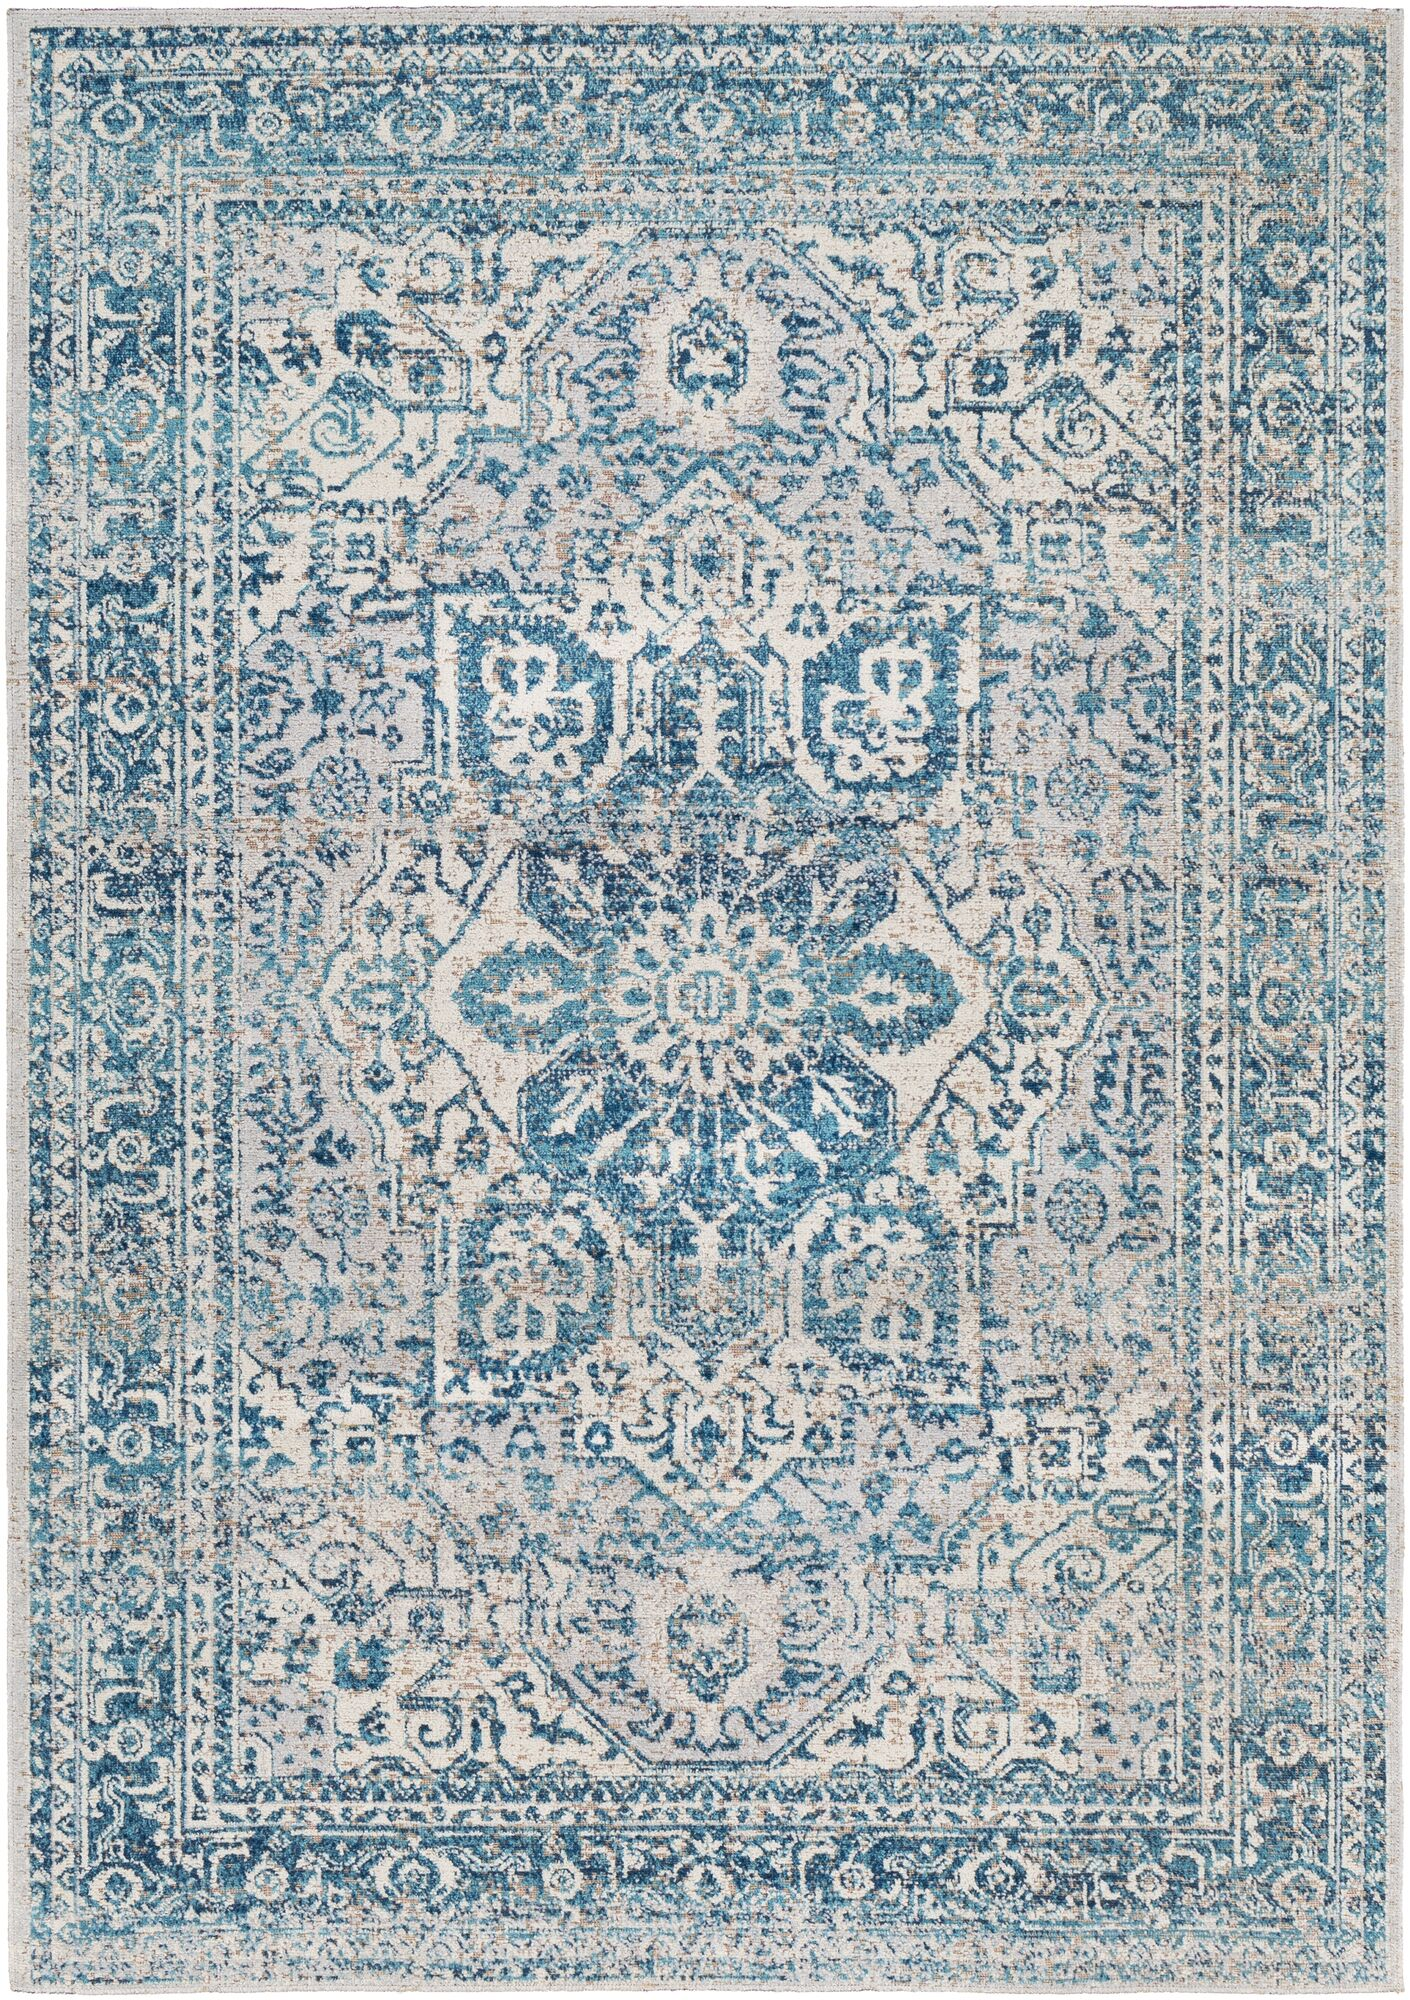 Lancaster Vintage Distressed Teal/Navy Area Rug Rug Size: Rectangle 7'10